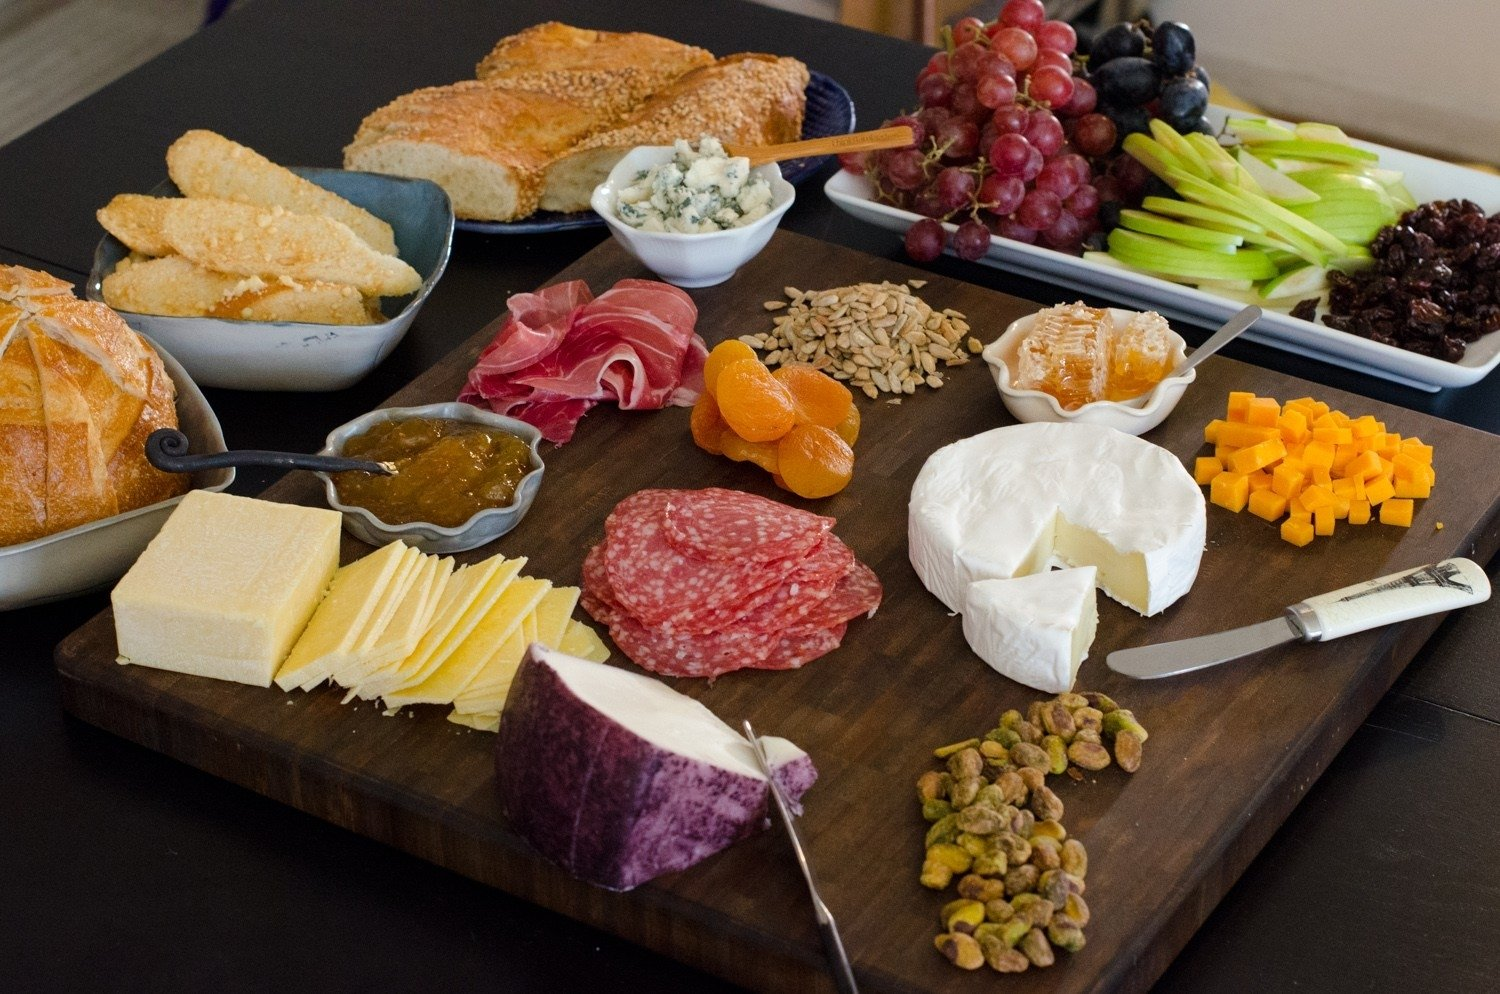 10 Unique Meat And Cheese Platter Ideas how to curate a cheese plate chef sarah elizabeth 2021